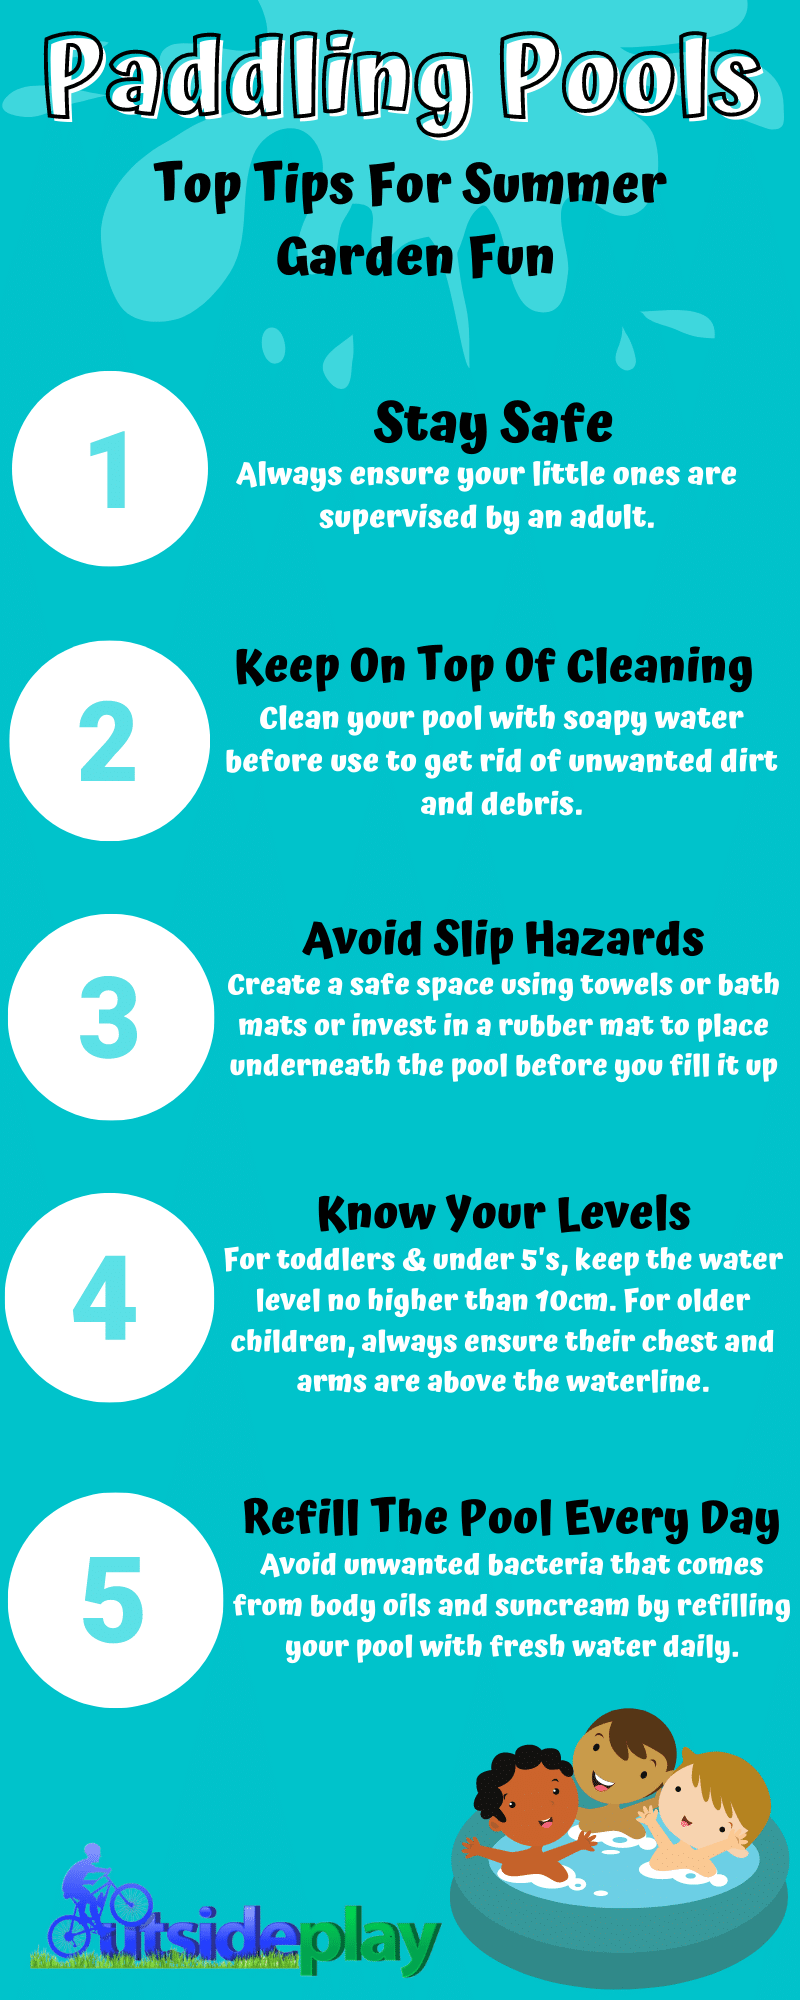 Paddling Pools – Top Tips For Summer Garden Fun